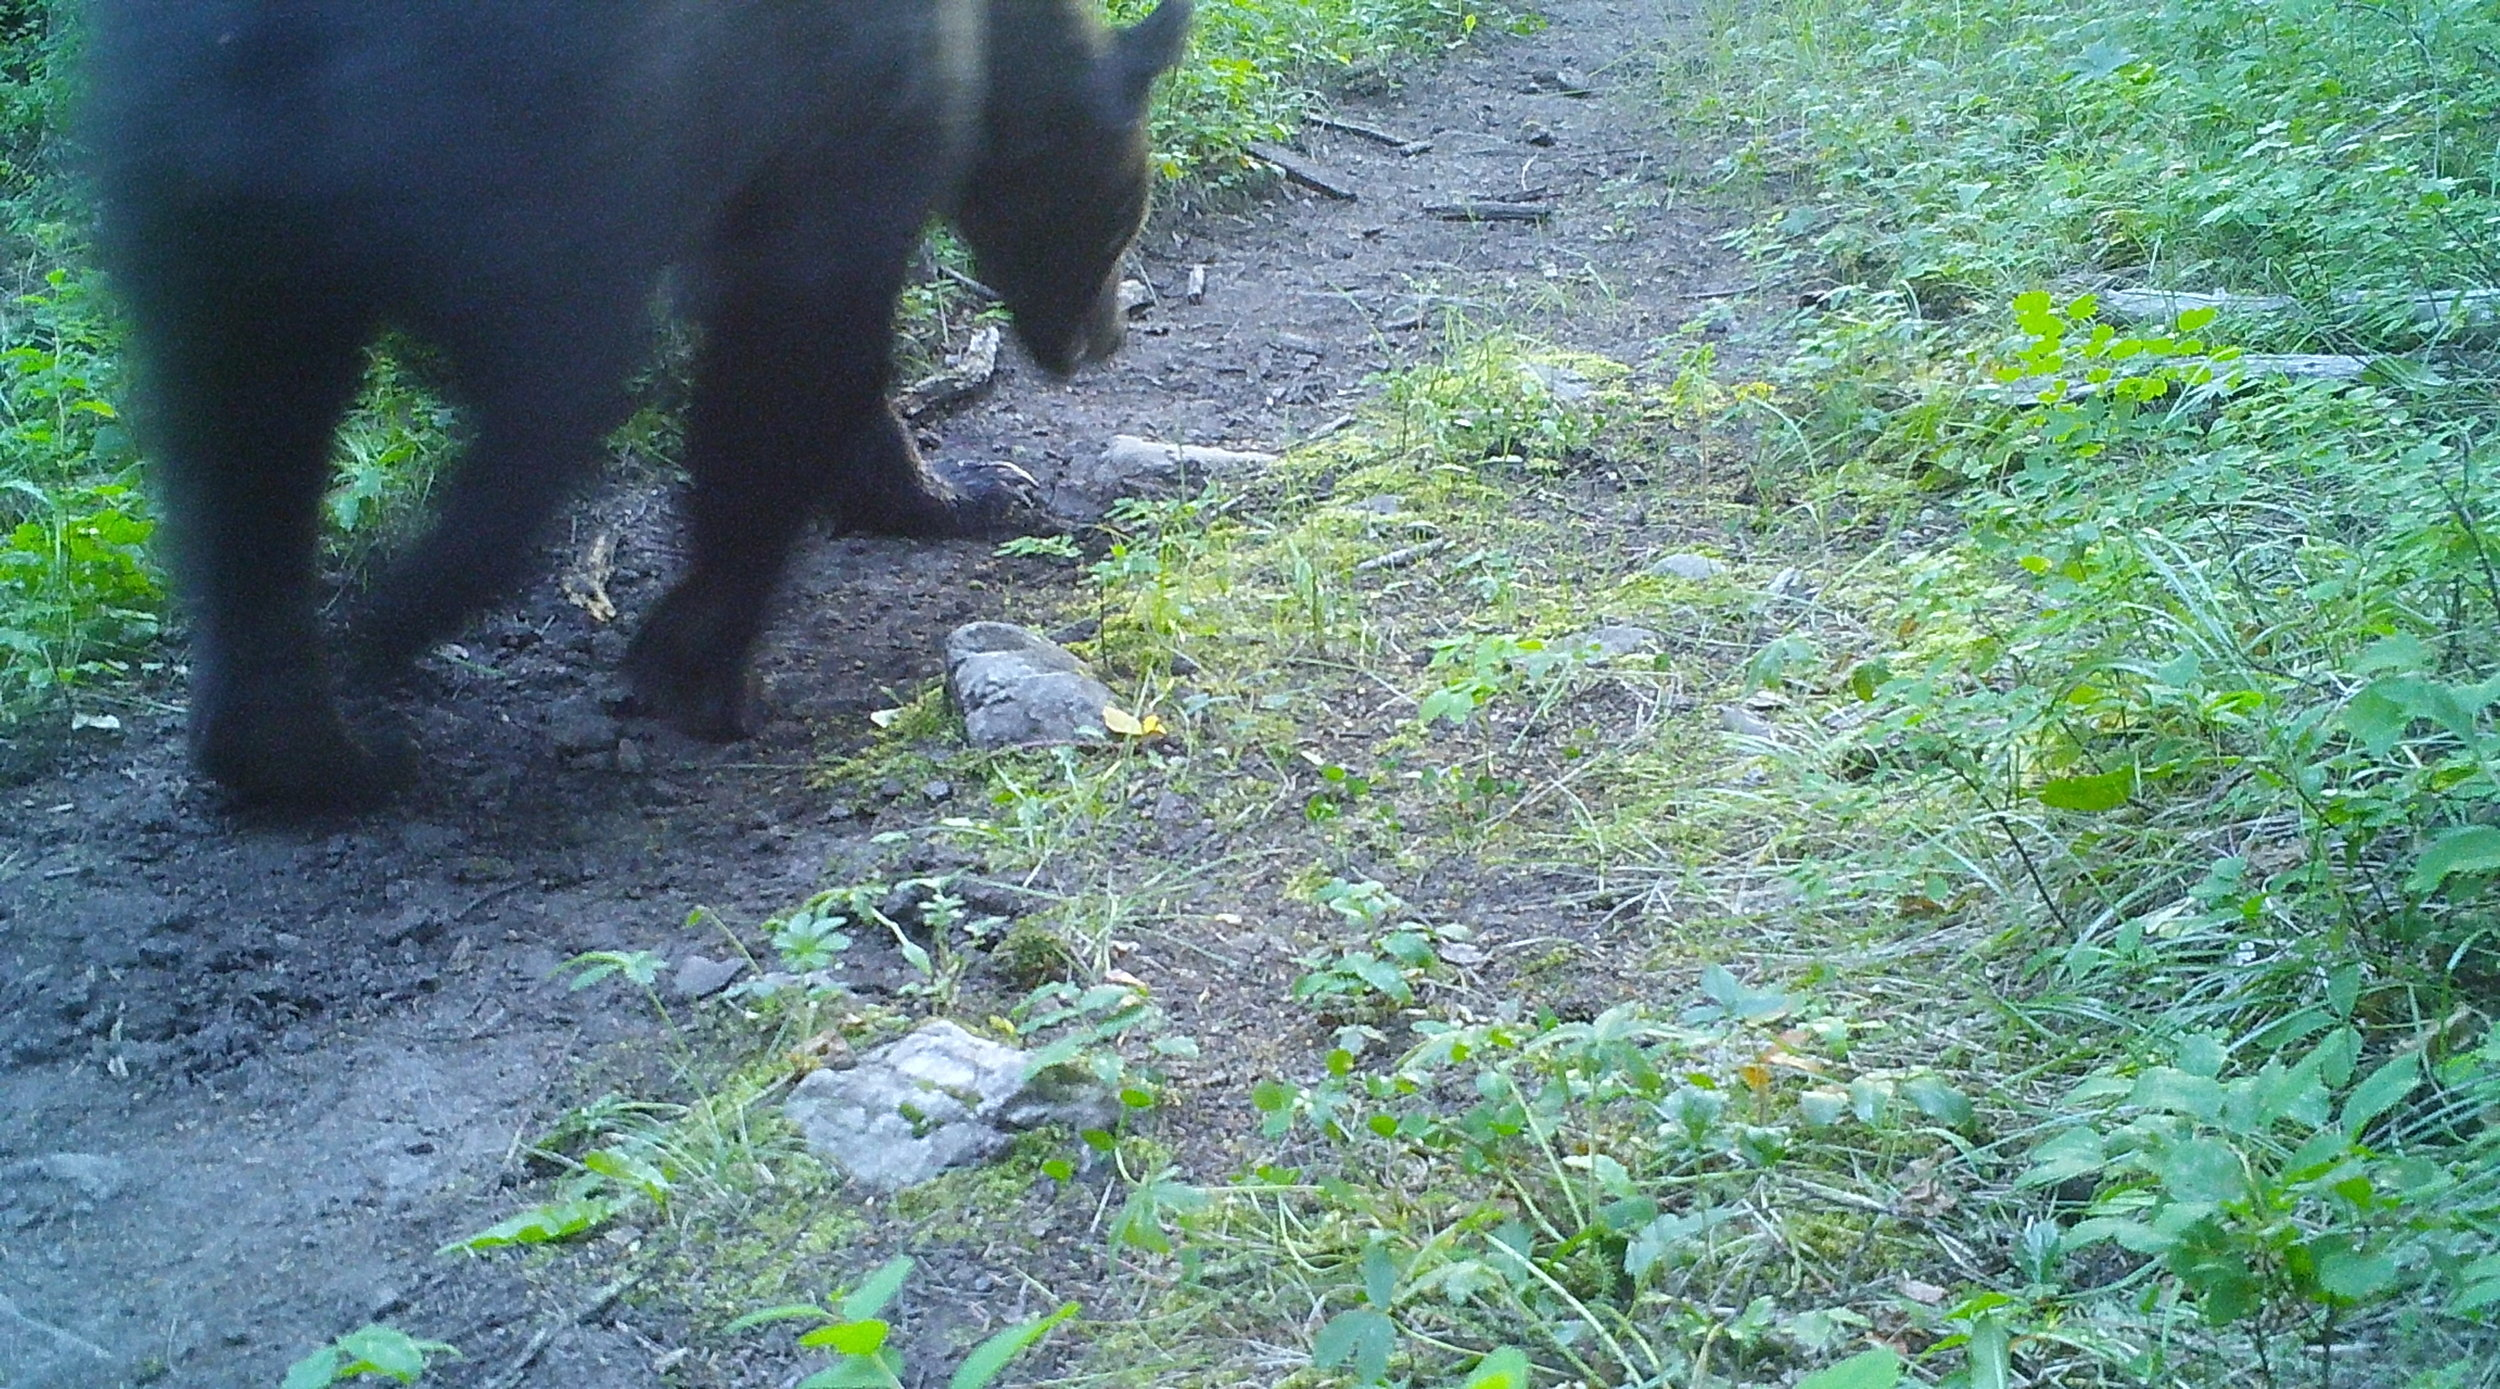 The bear had a good time playing with the trail camera and ultimately redirected it to the ground